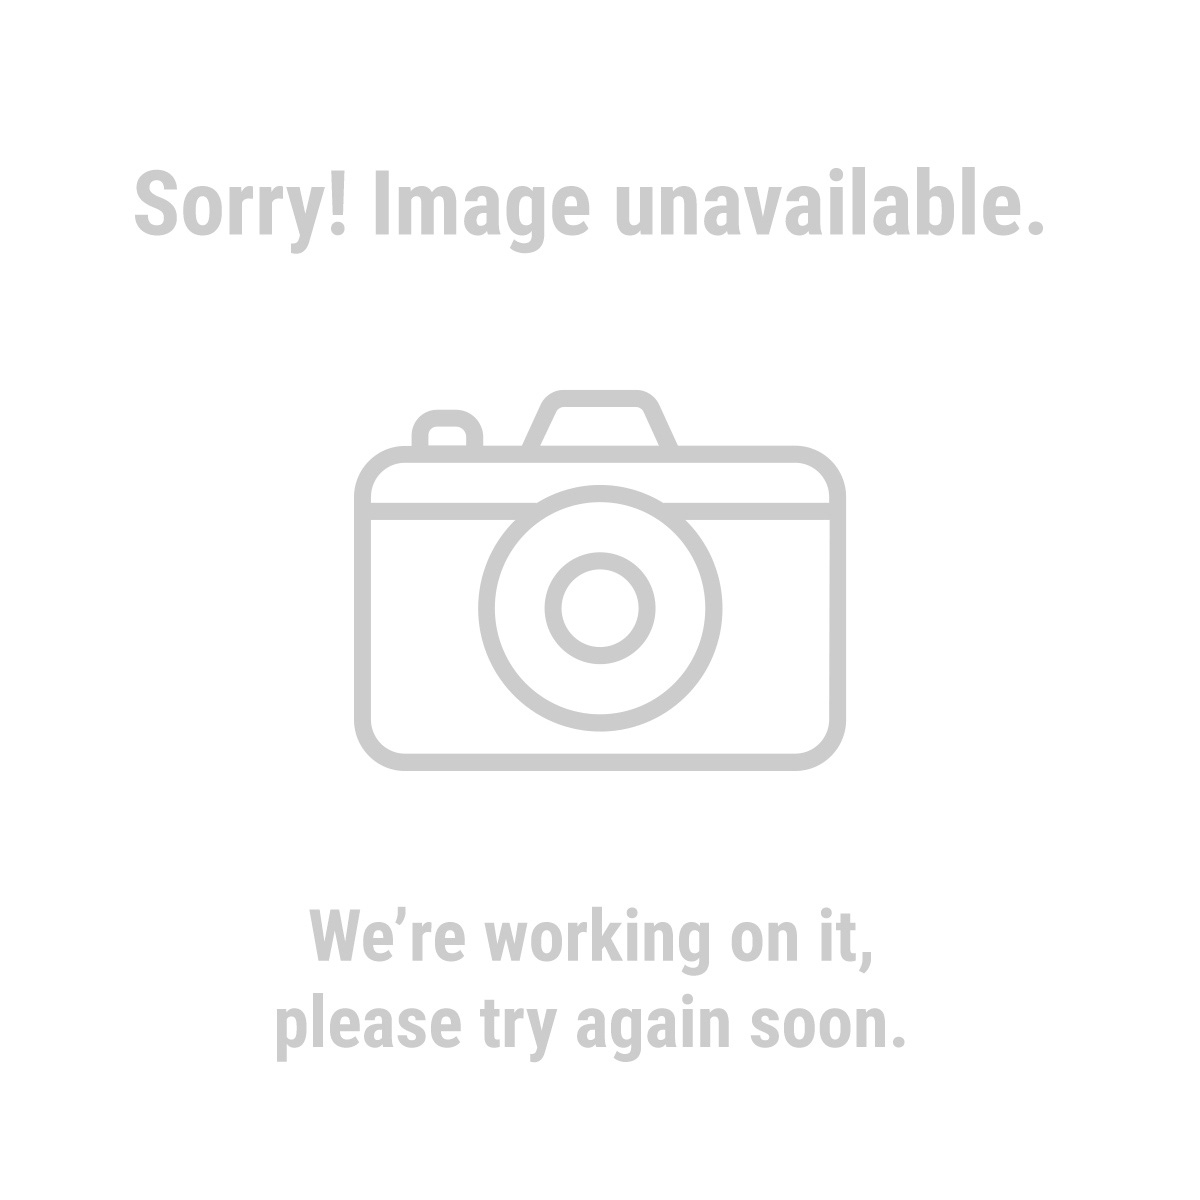 "Haul Master Automotive 90984 4 Piece 1"" x 15 Ft. Ratcheting Tie Down Set"